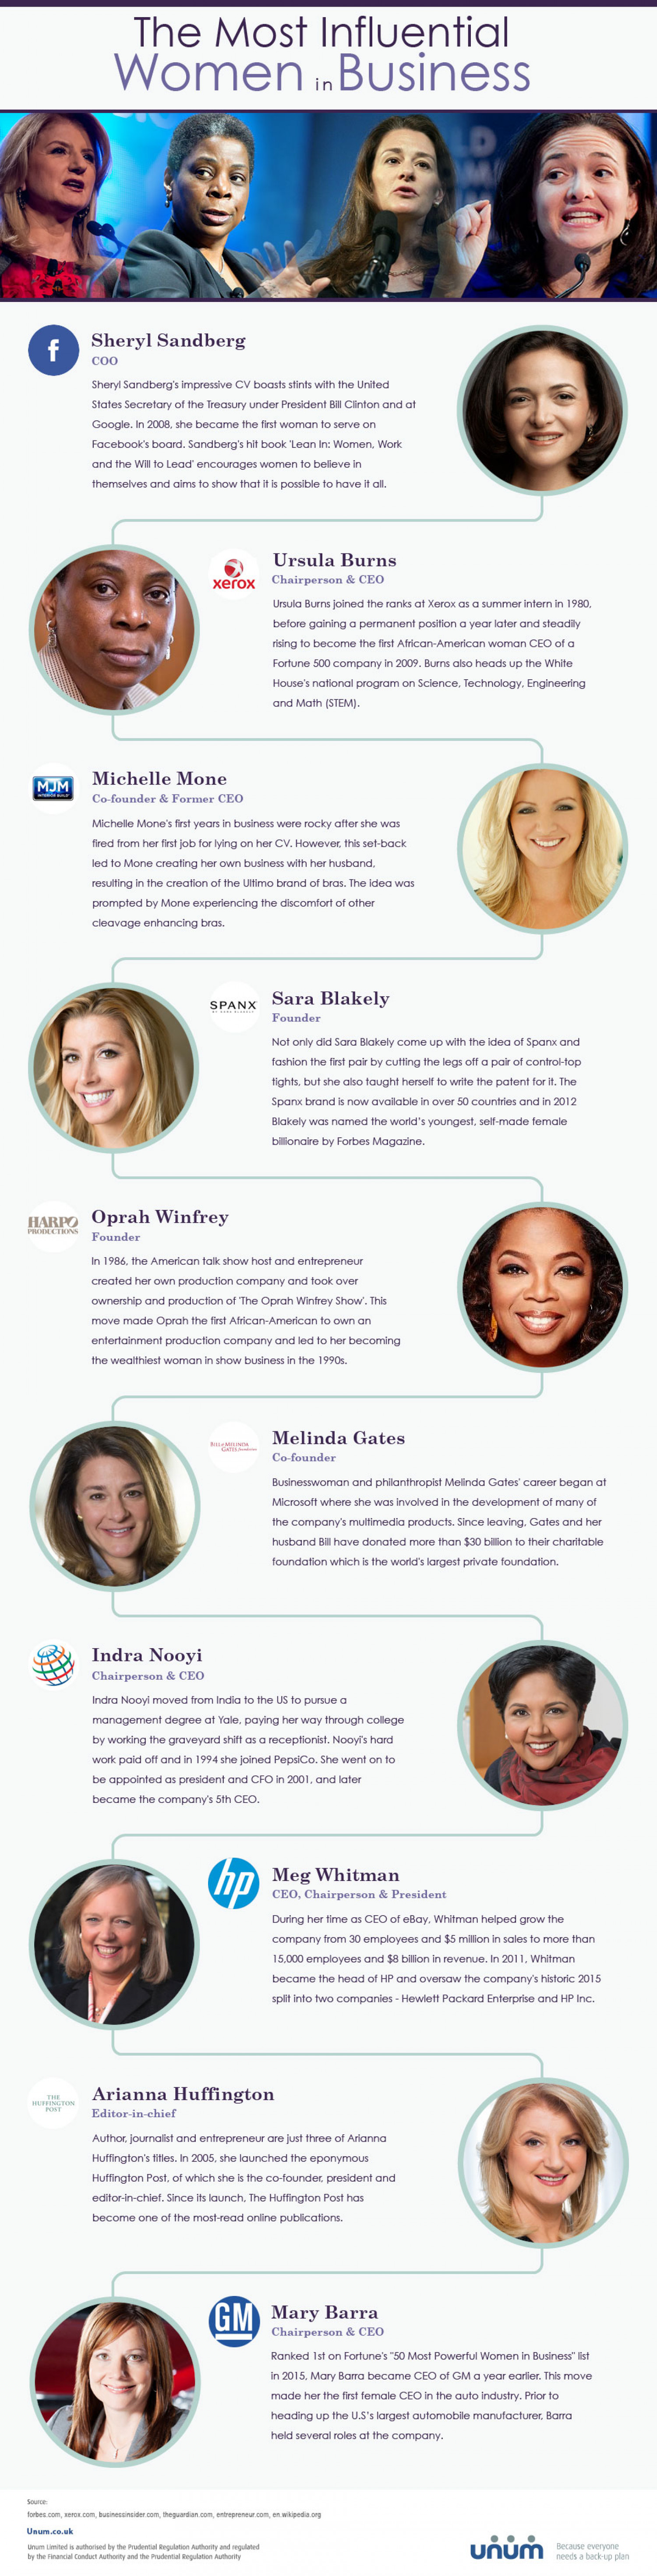 The Most Influential Women in Business Infographic